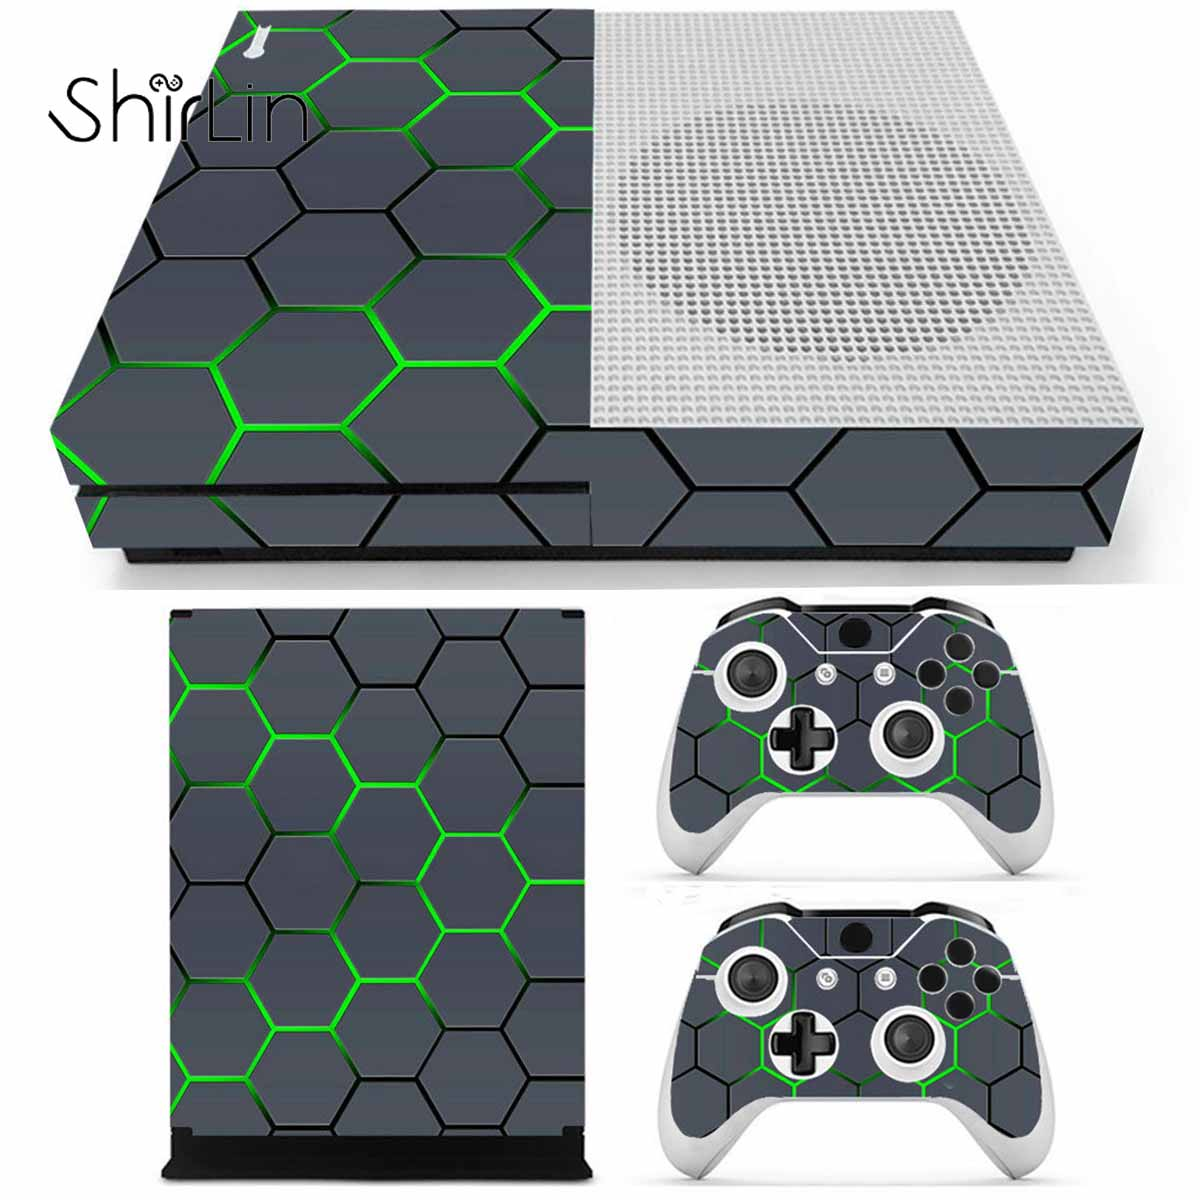 Vinyl Sticker Game Console Skin Sticker Cover Protector For XBOX for ONE S Slim Console Kinect and 2 Controller SkinVinyl Sticker Game Console Skin Sticker Cover Protector For XBOX for ONE S Slim Console Kinect and 2 Controller Skin